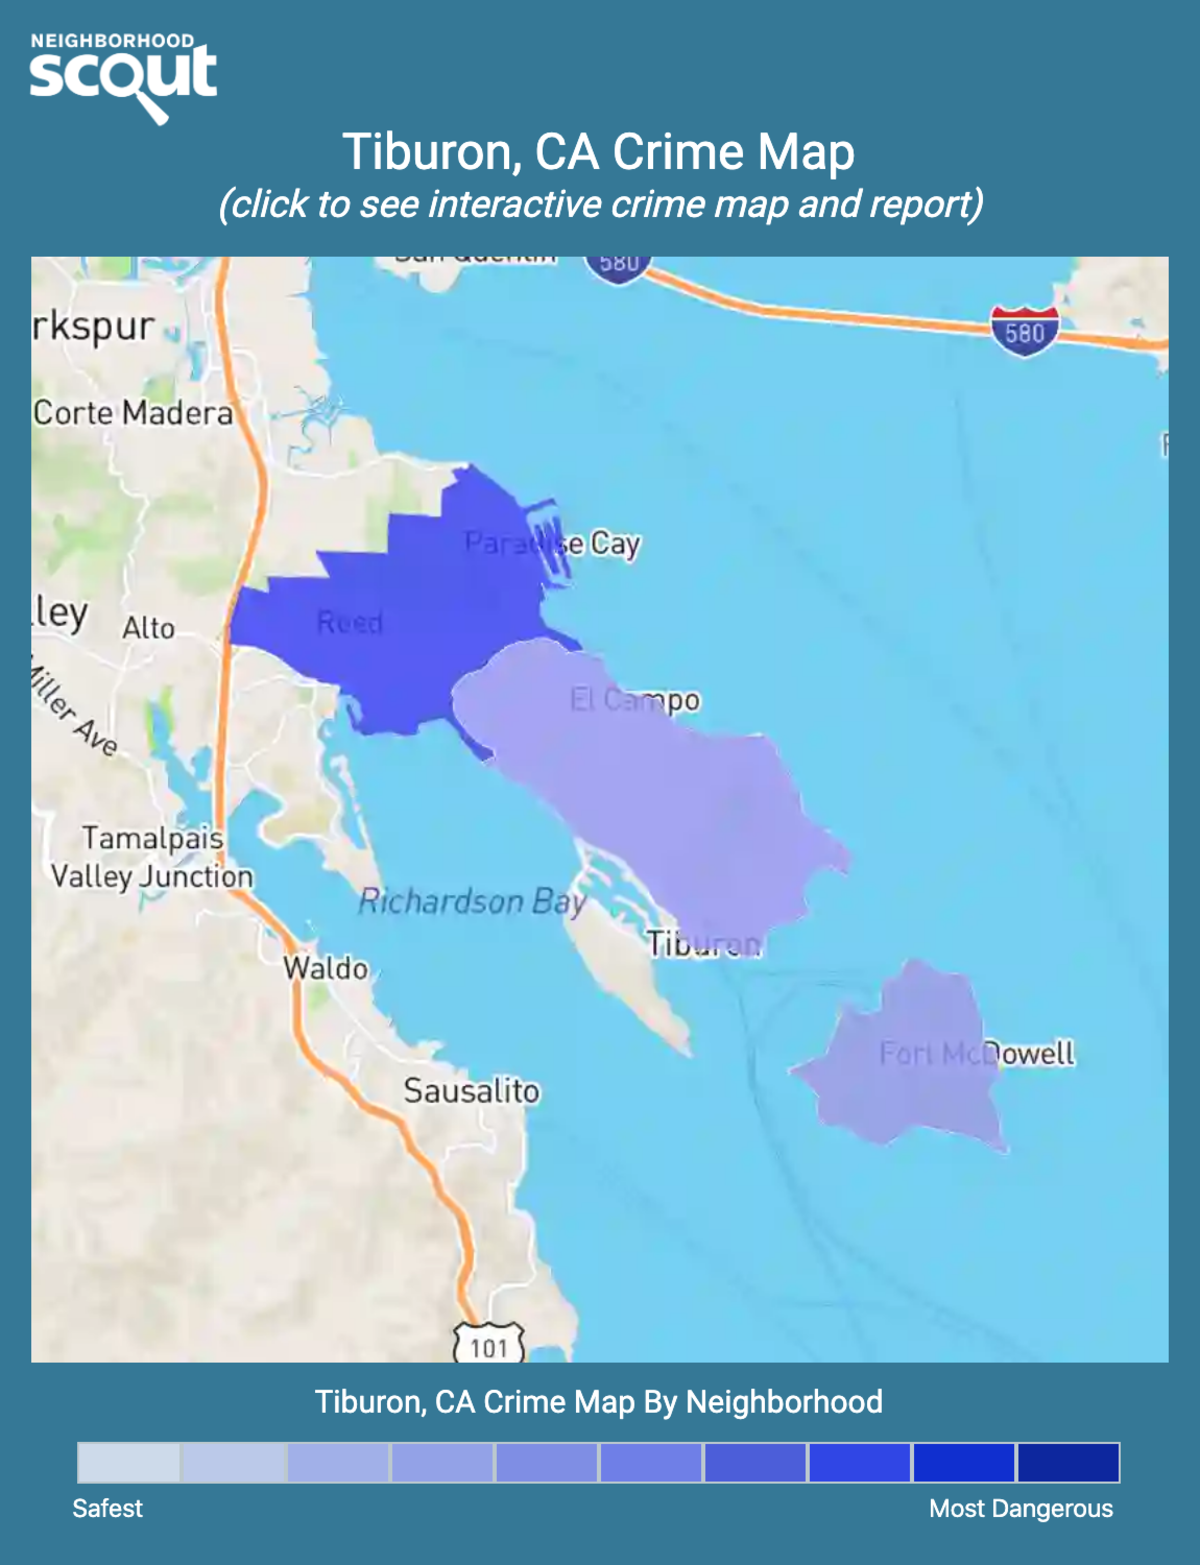 Tiburon, California crime map